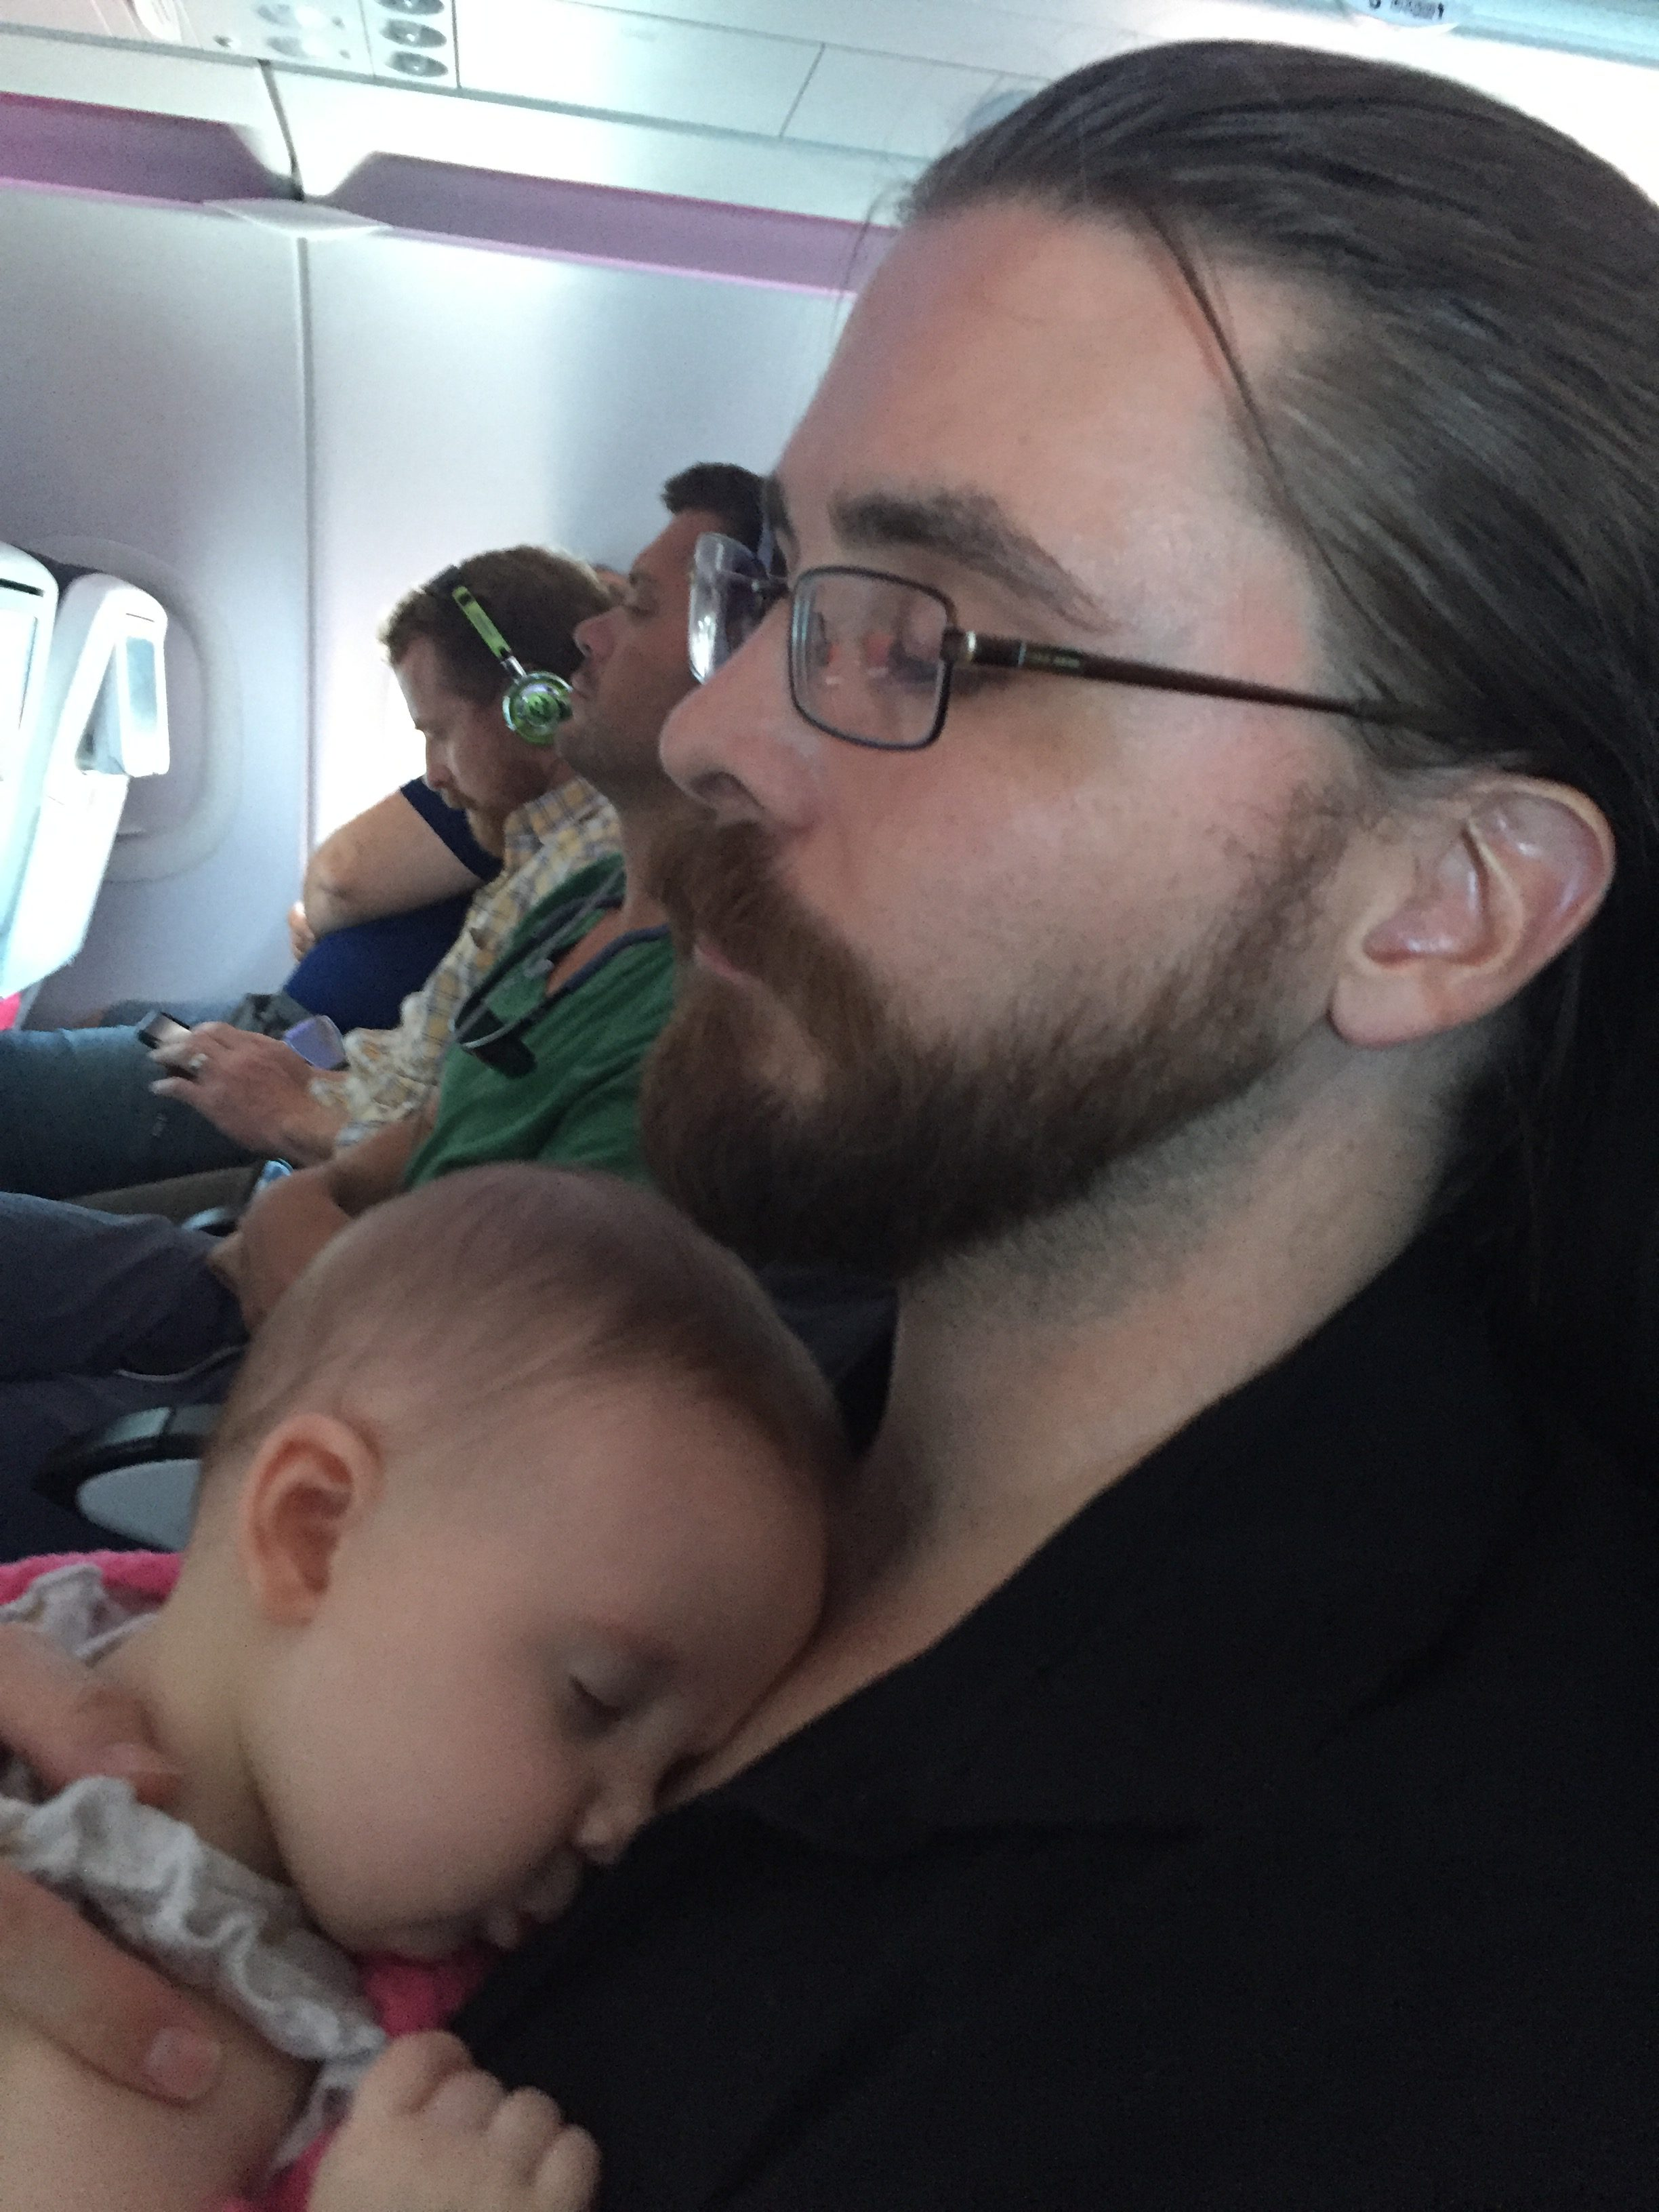 Madeline sleeping like a champ on the plane!